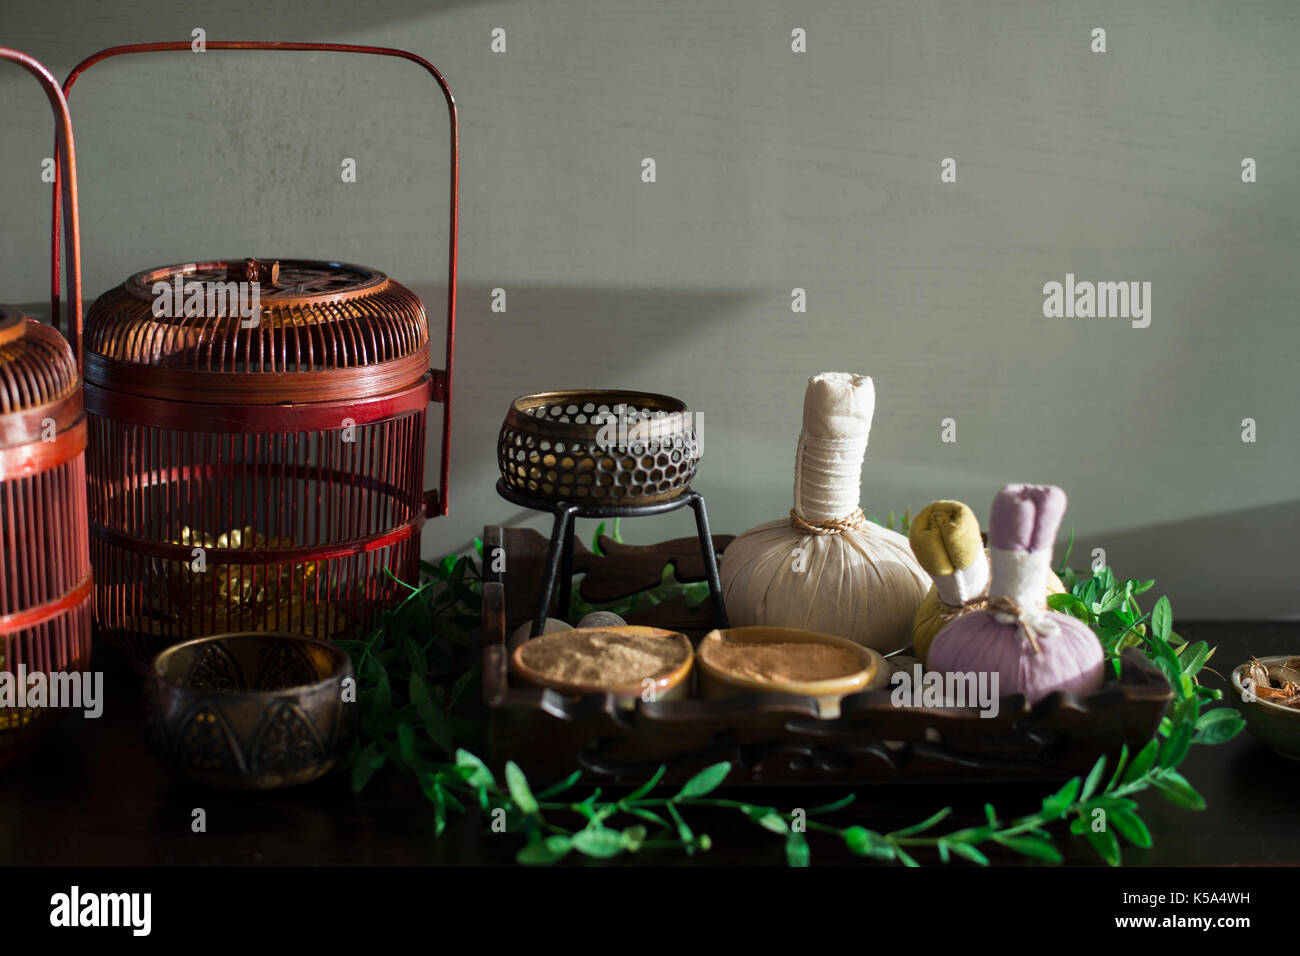 Herbal Compress Balls and other spa ingredients for Thai massage - Stock Image